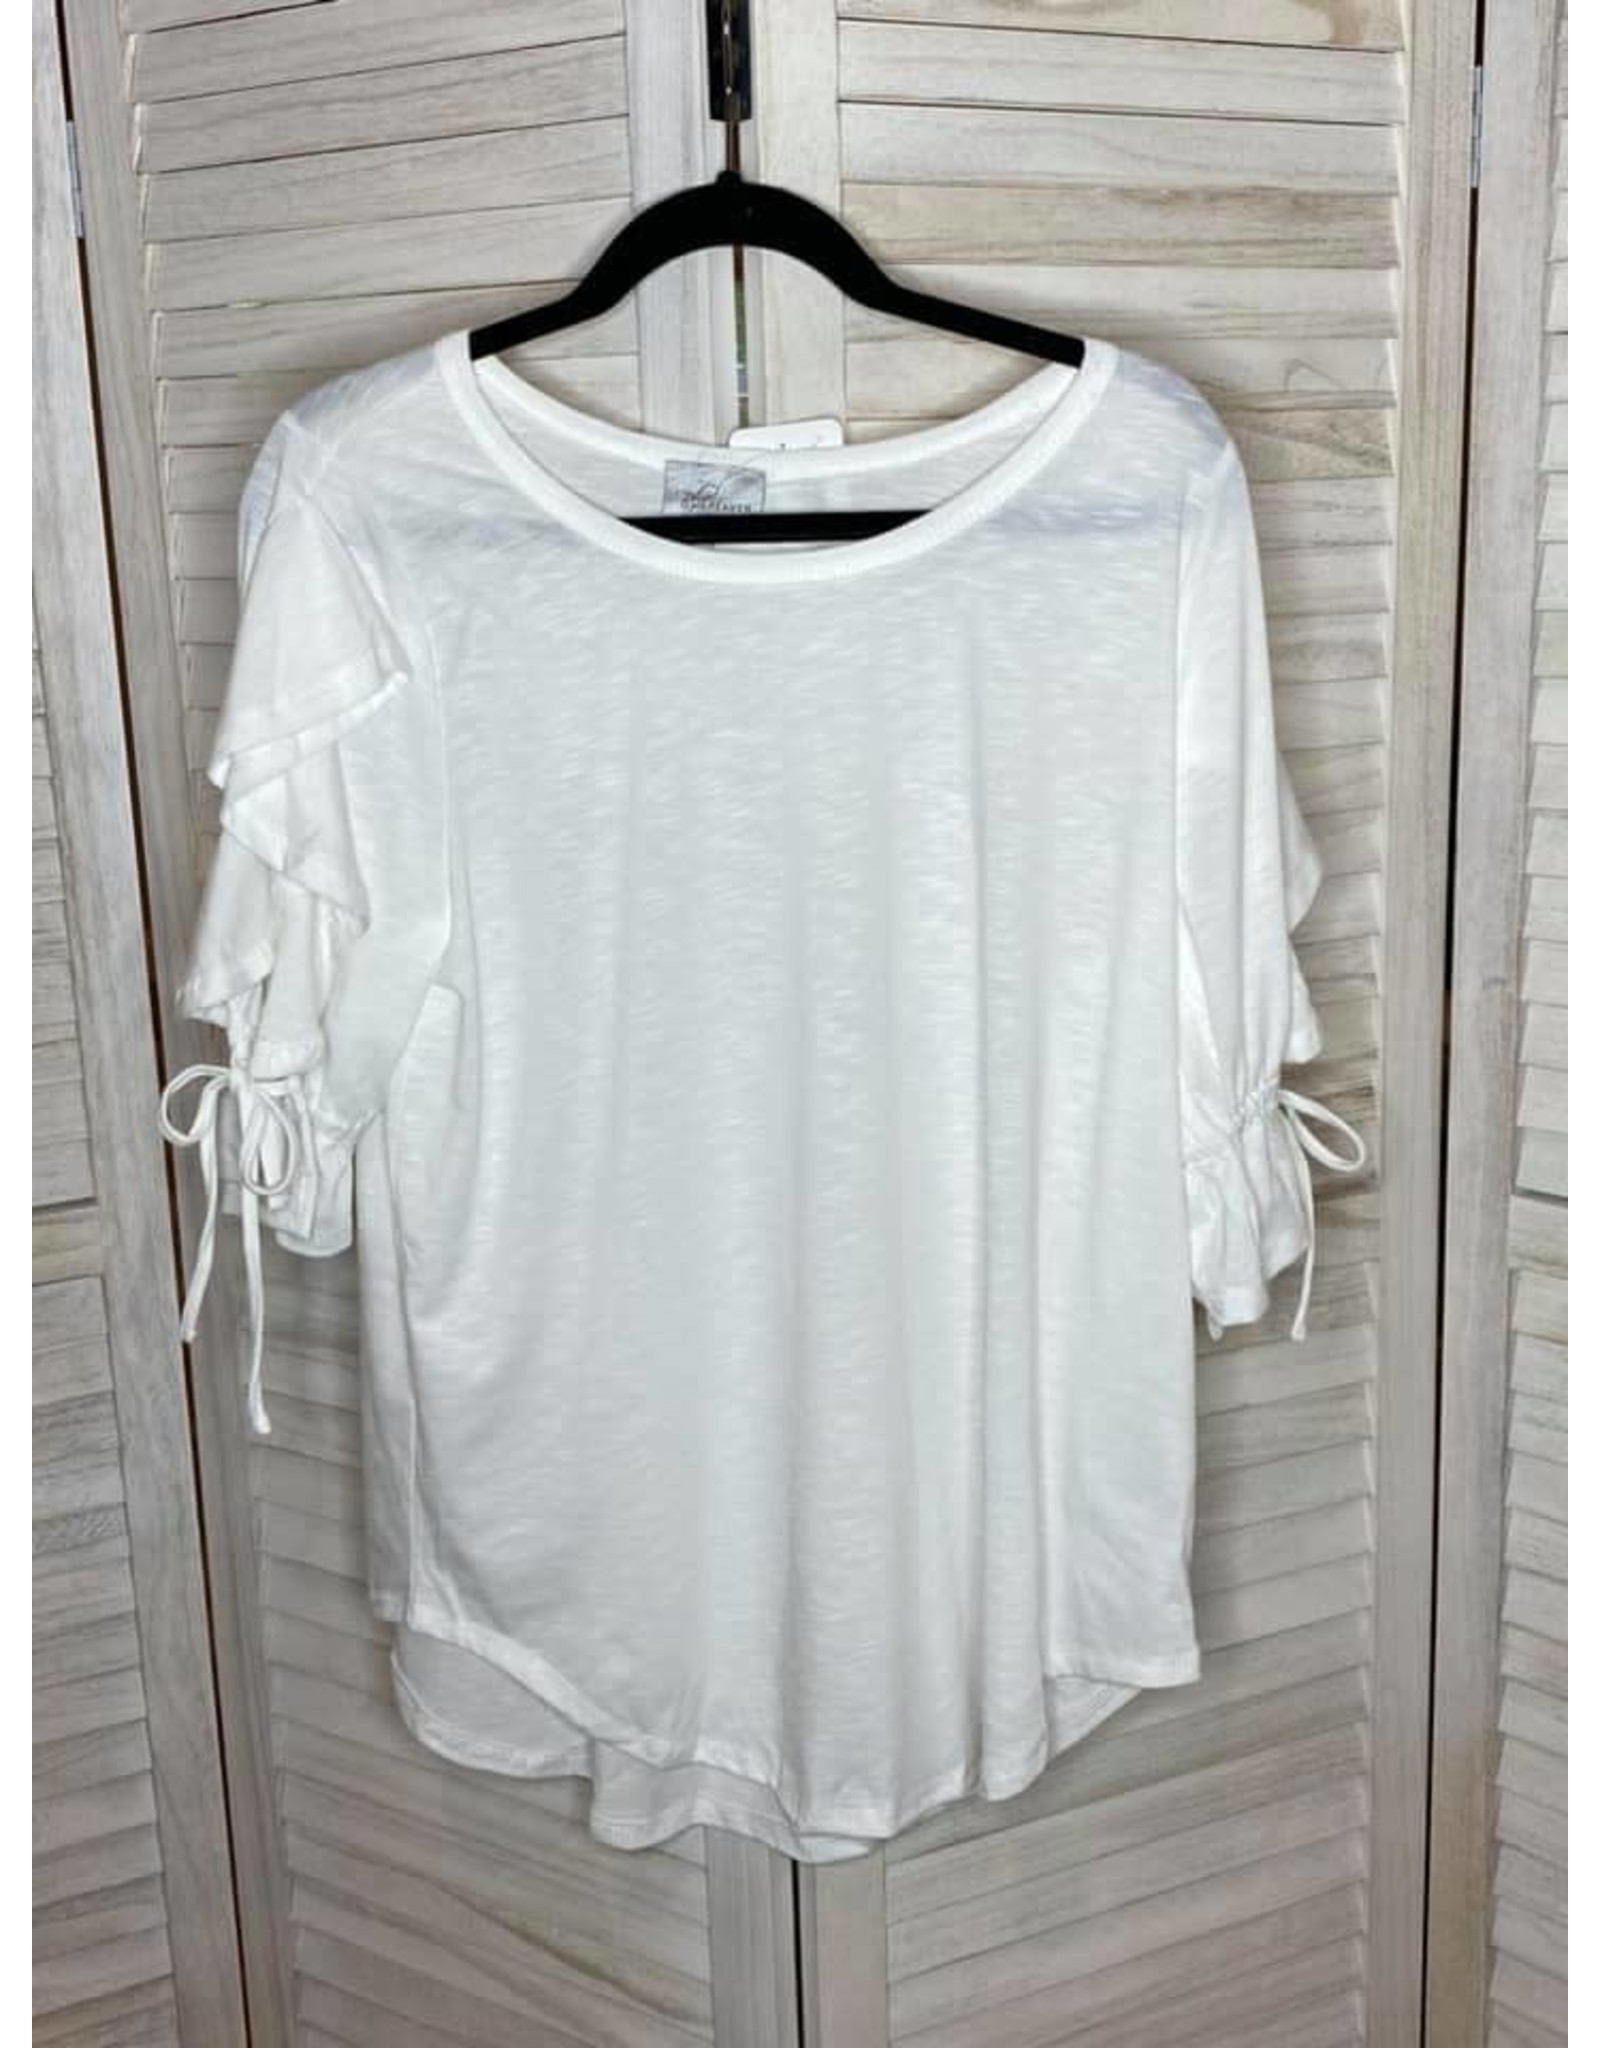 Gigio Off White Burn Out Material Open Ruffle Top